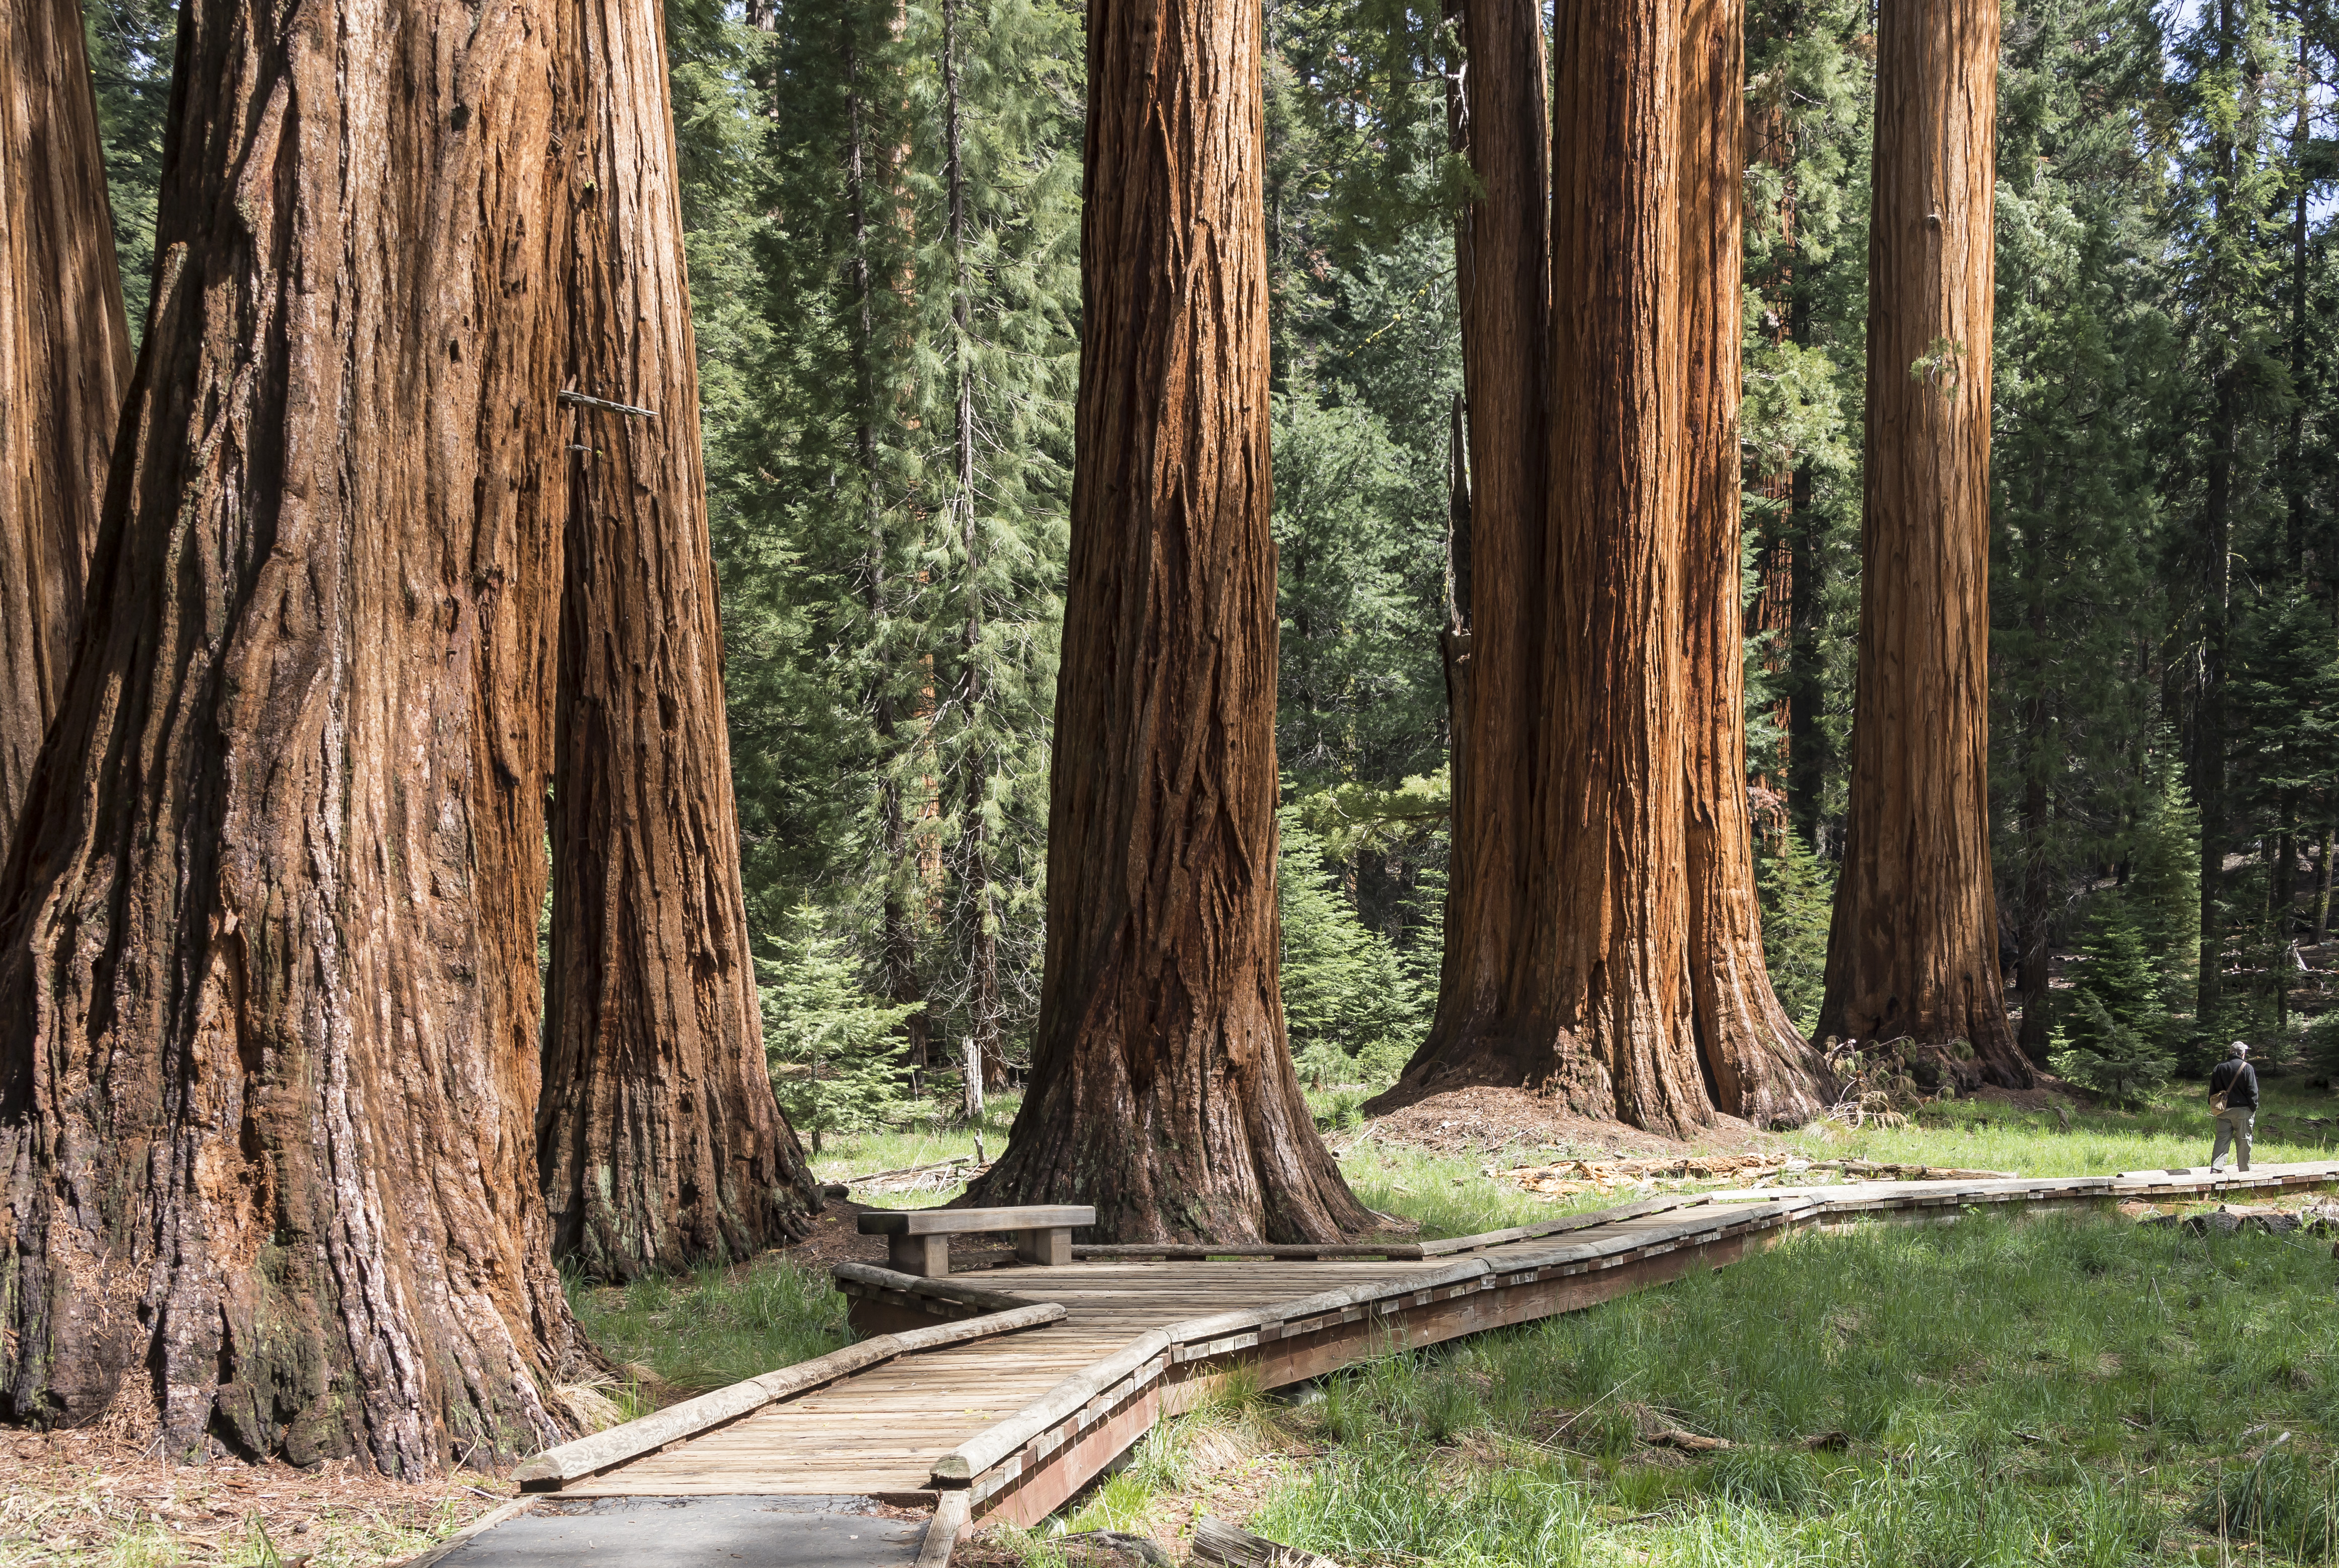 sequoia fall lowres time giant honeymoon forest with htm sequoias in california grant some kc s spend this couple cabins quiet releases national